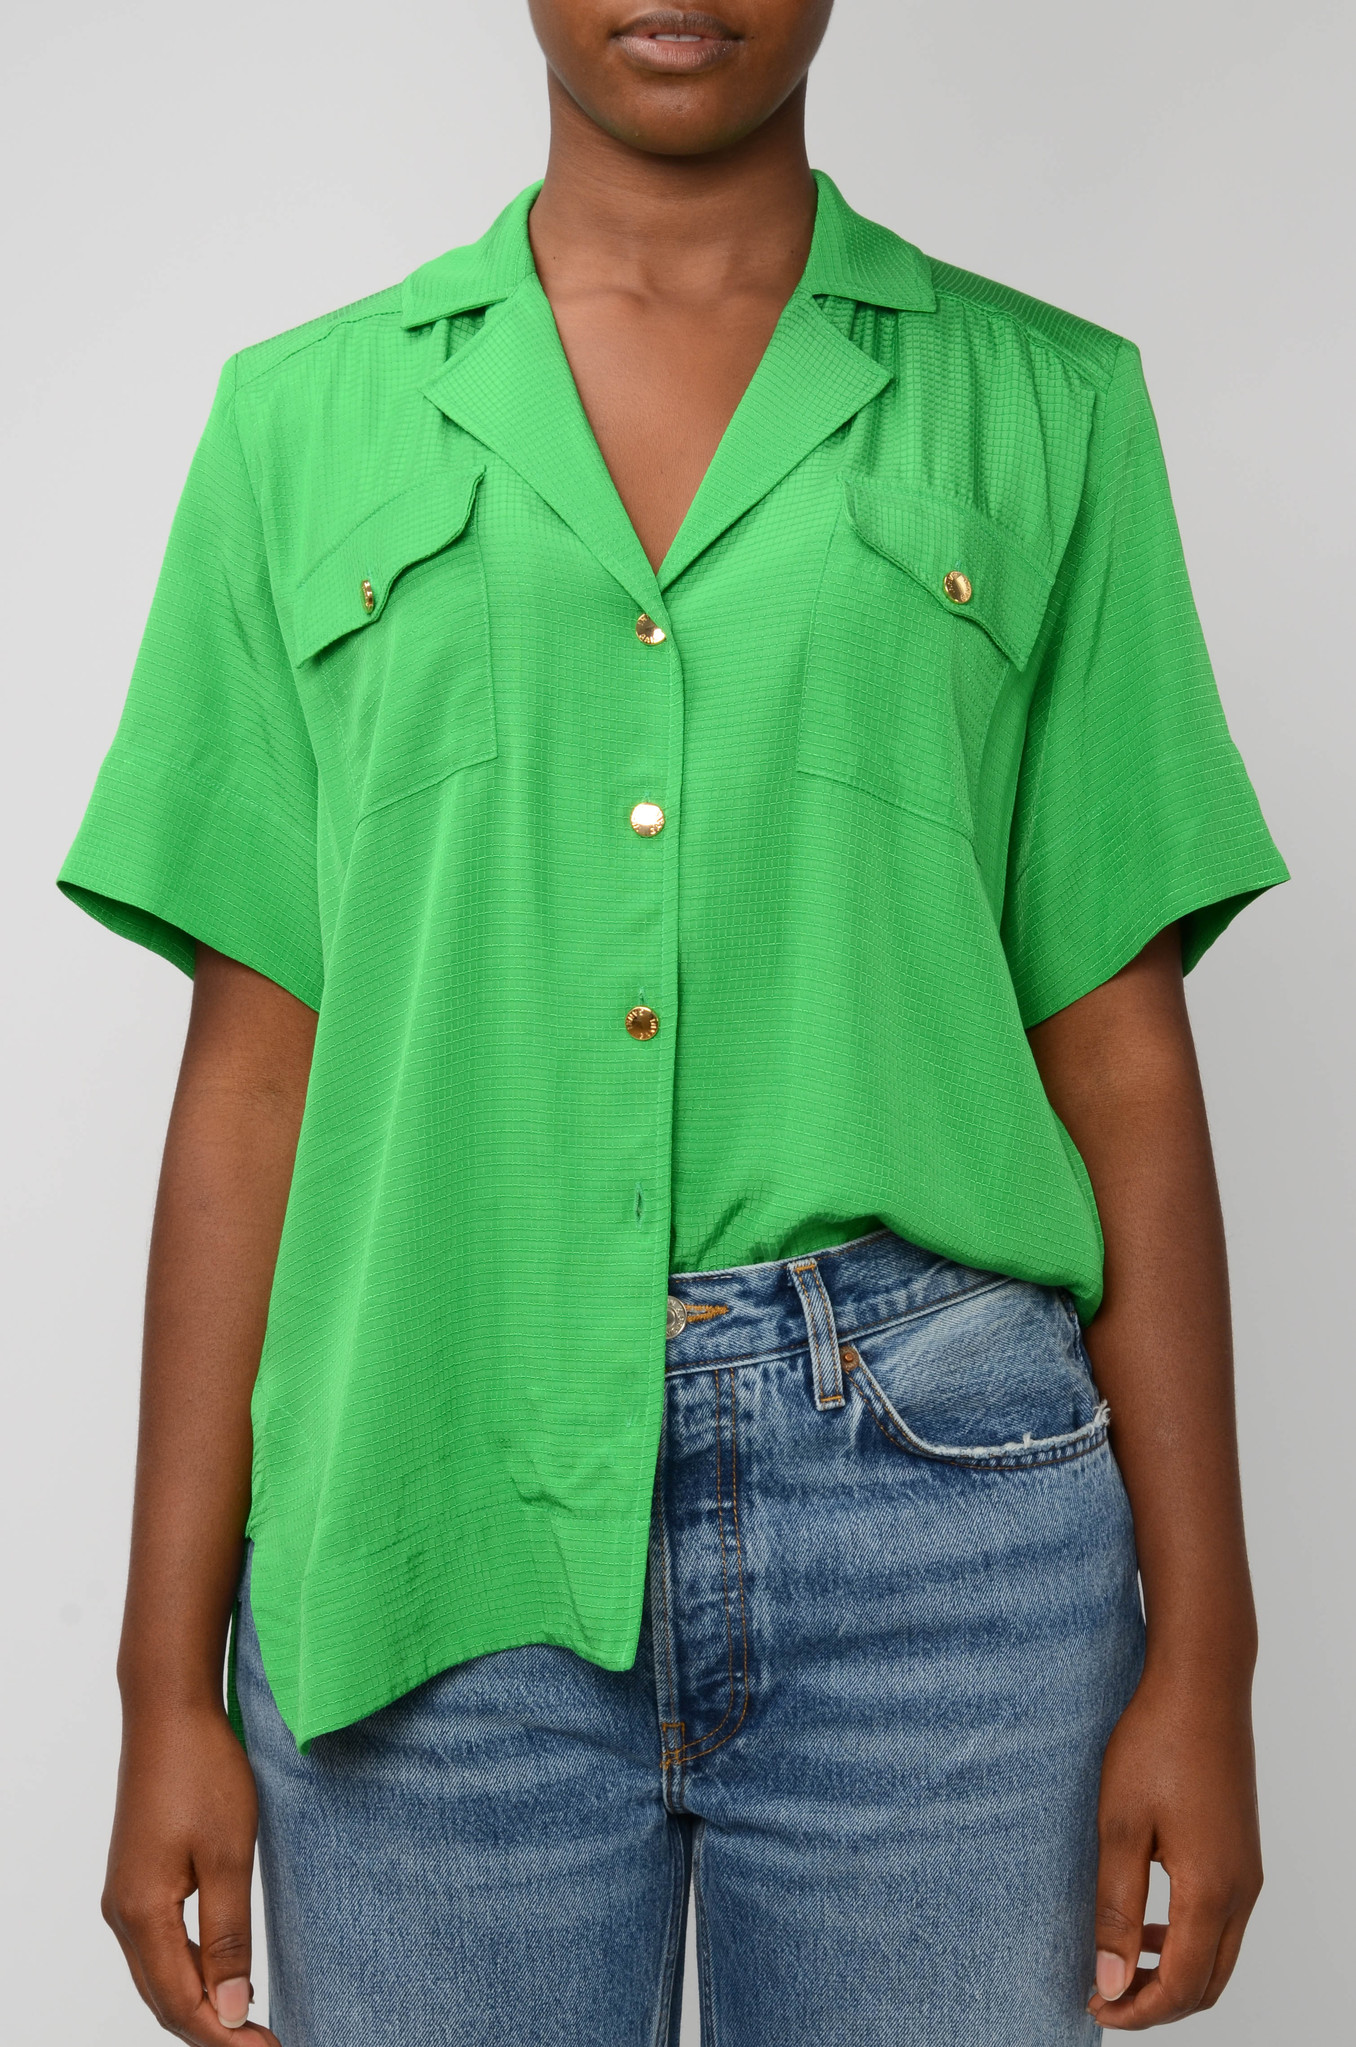 RIPSTOP SHIRT IN KELLY GREEN-1